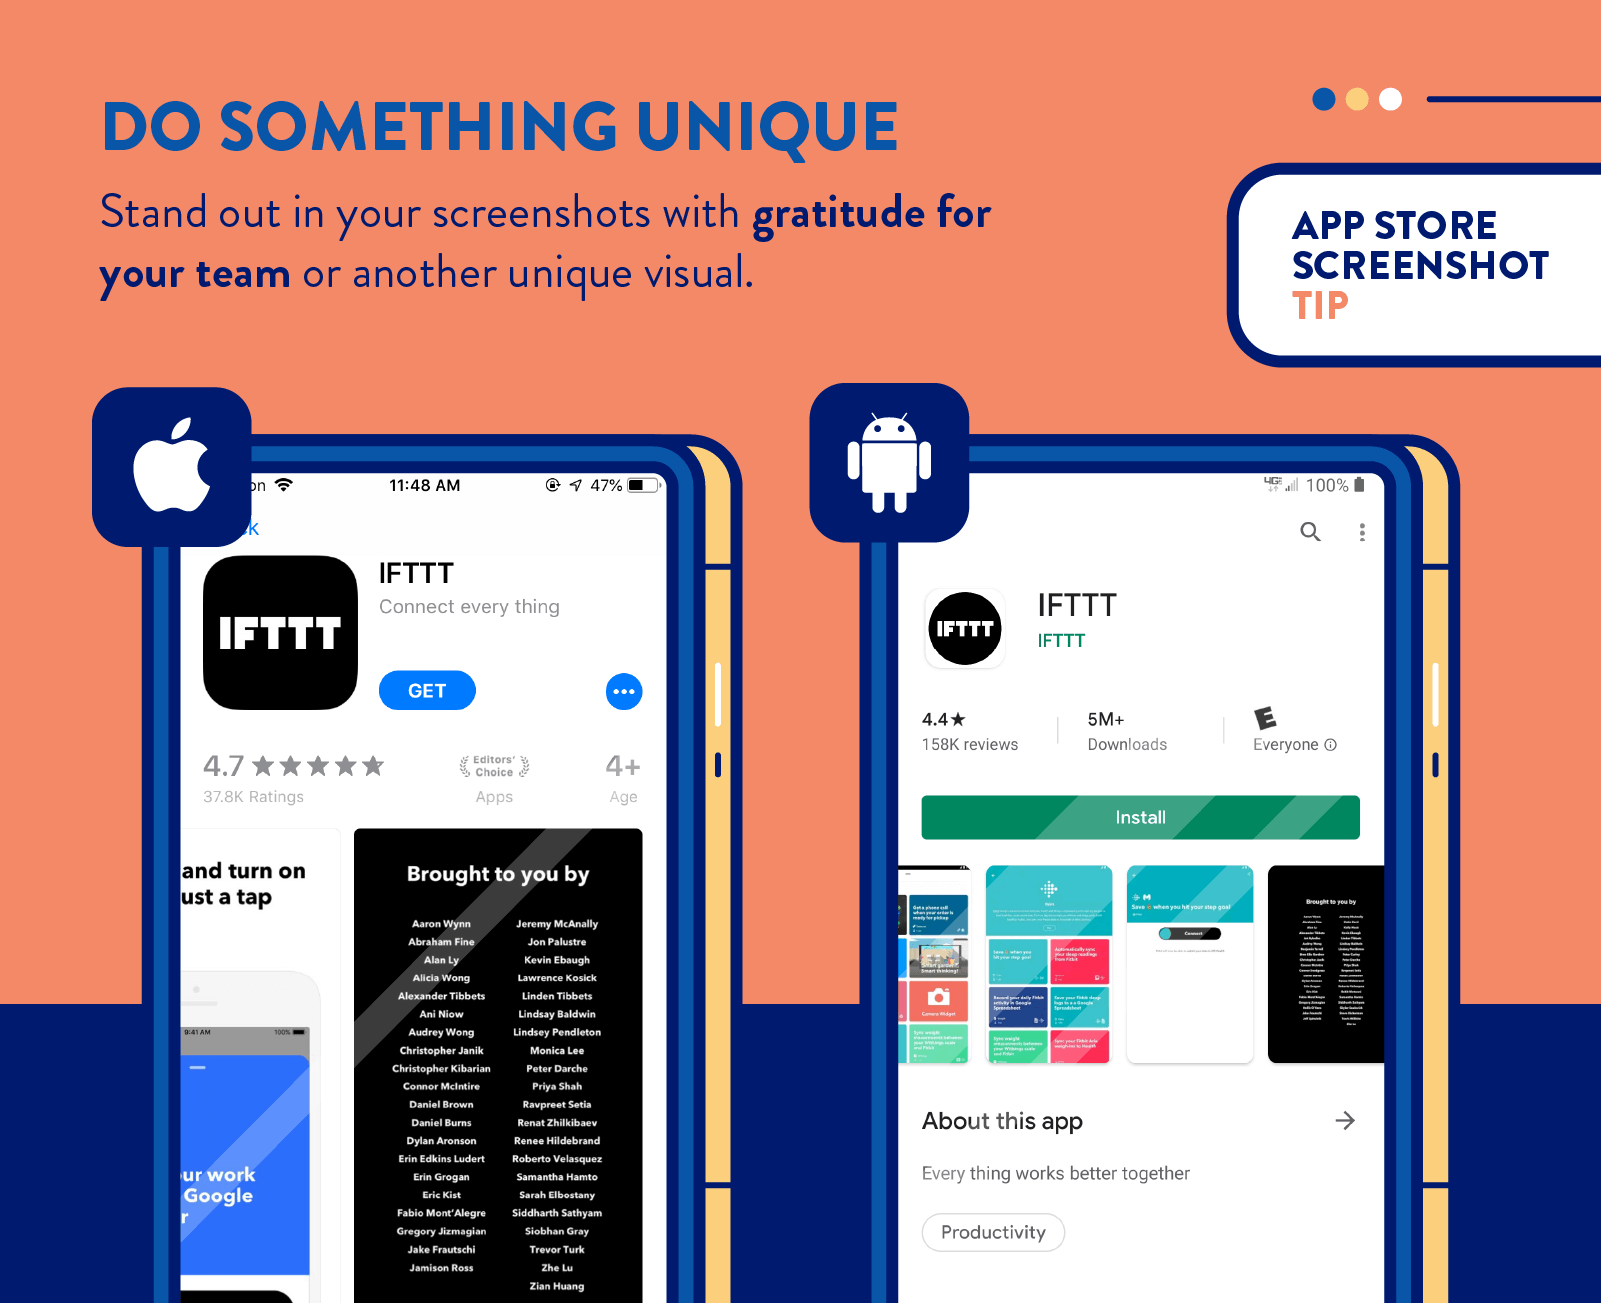 app store screenshots tip from IFTTT to do something unique